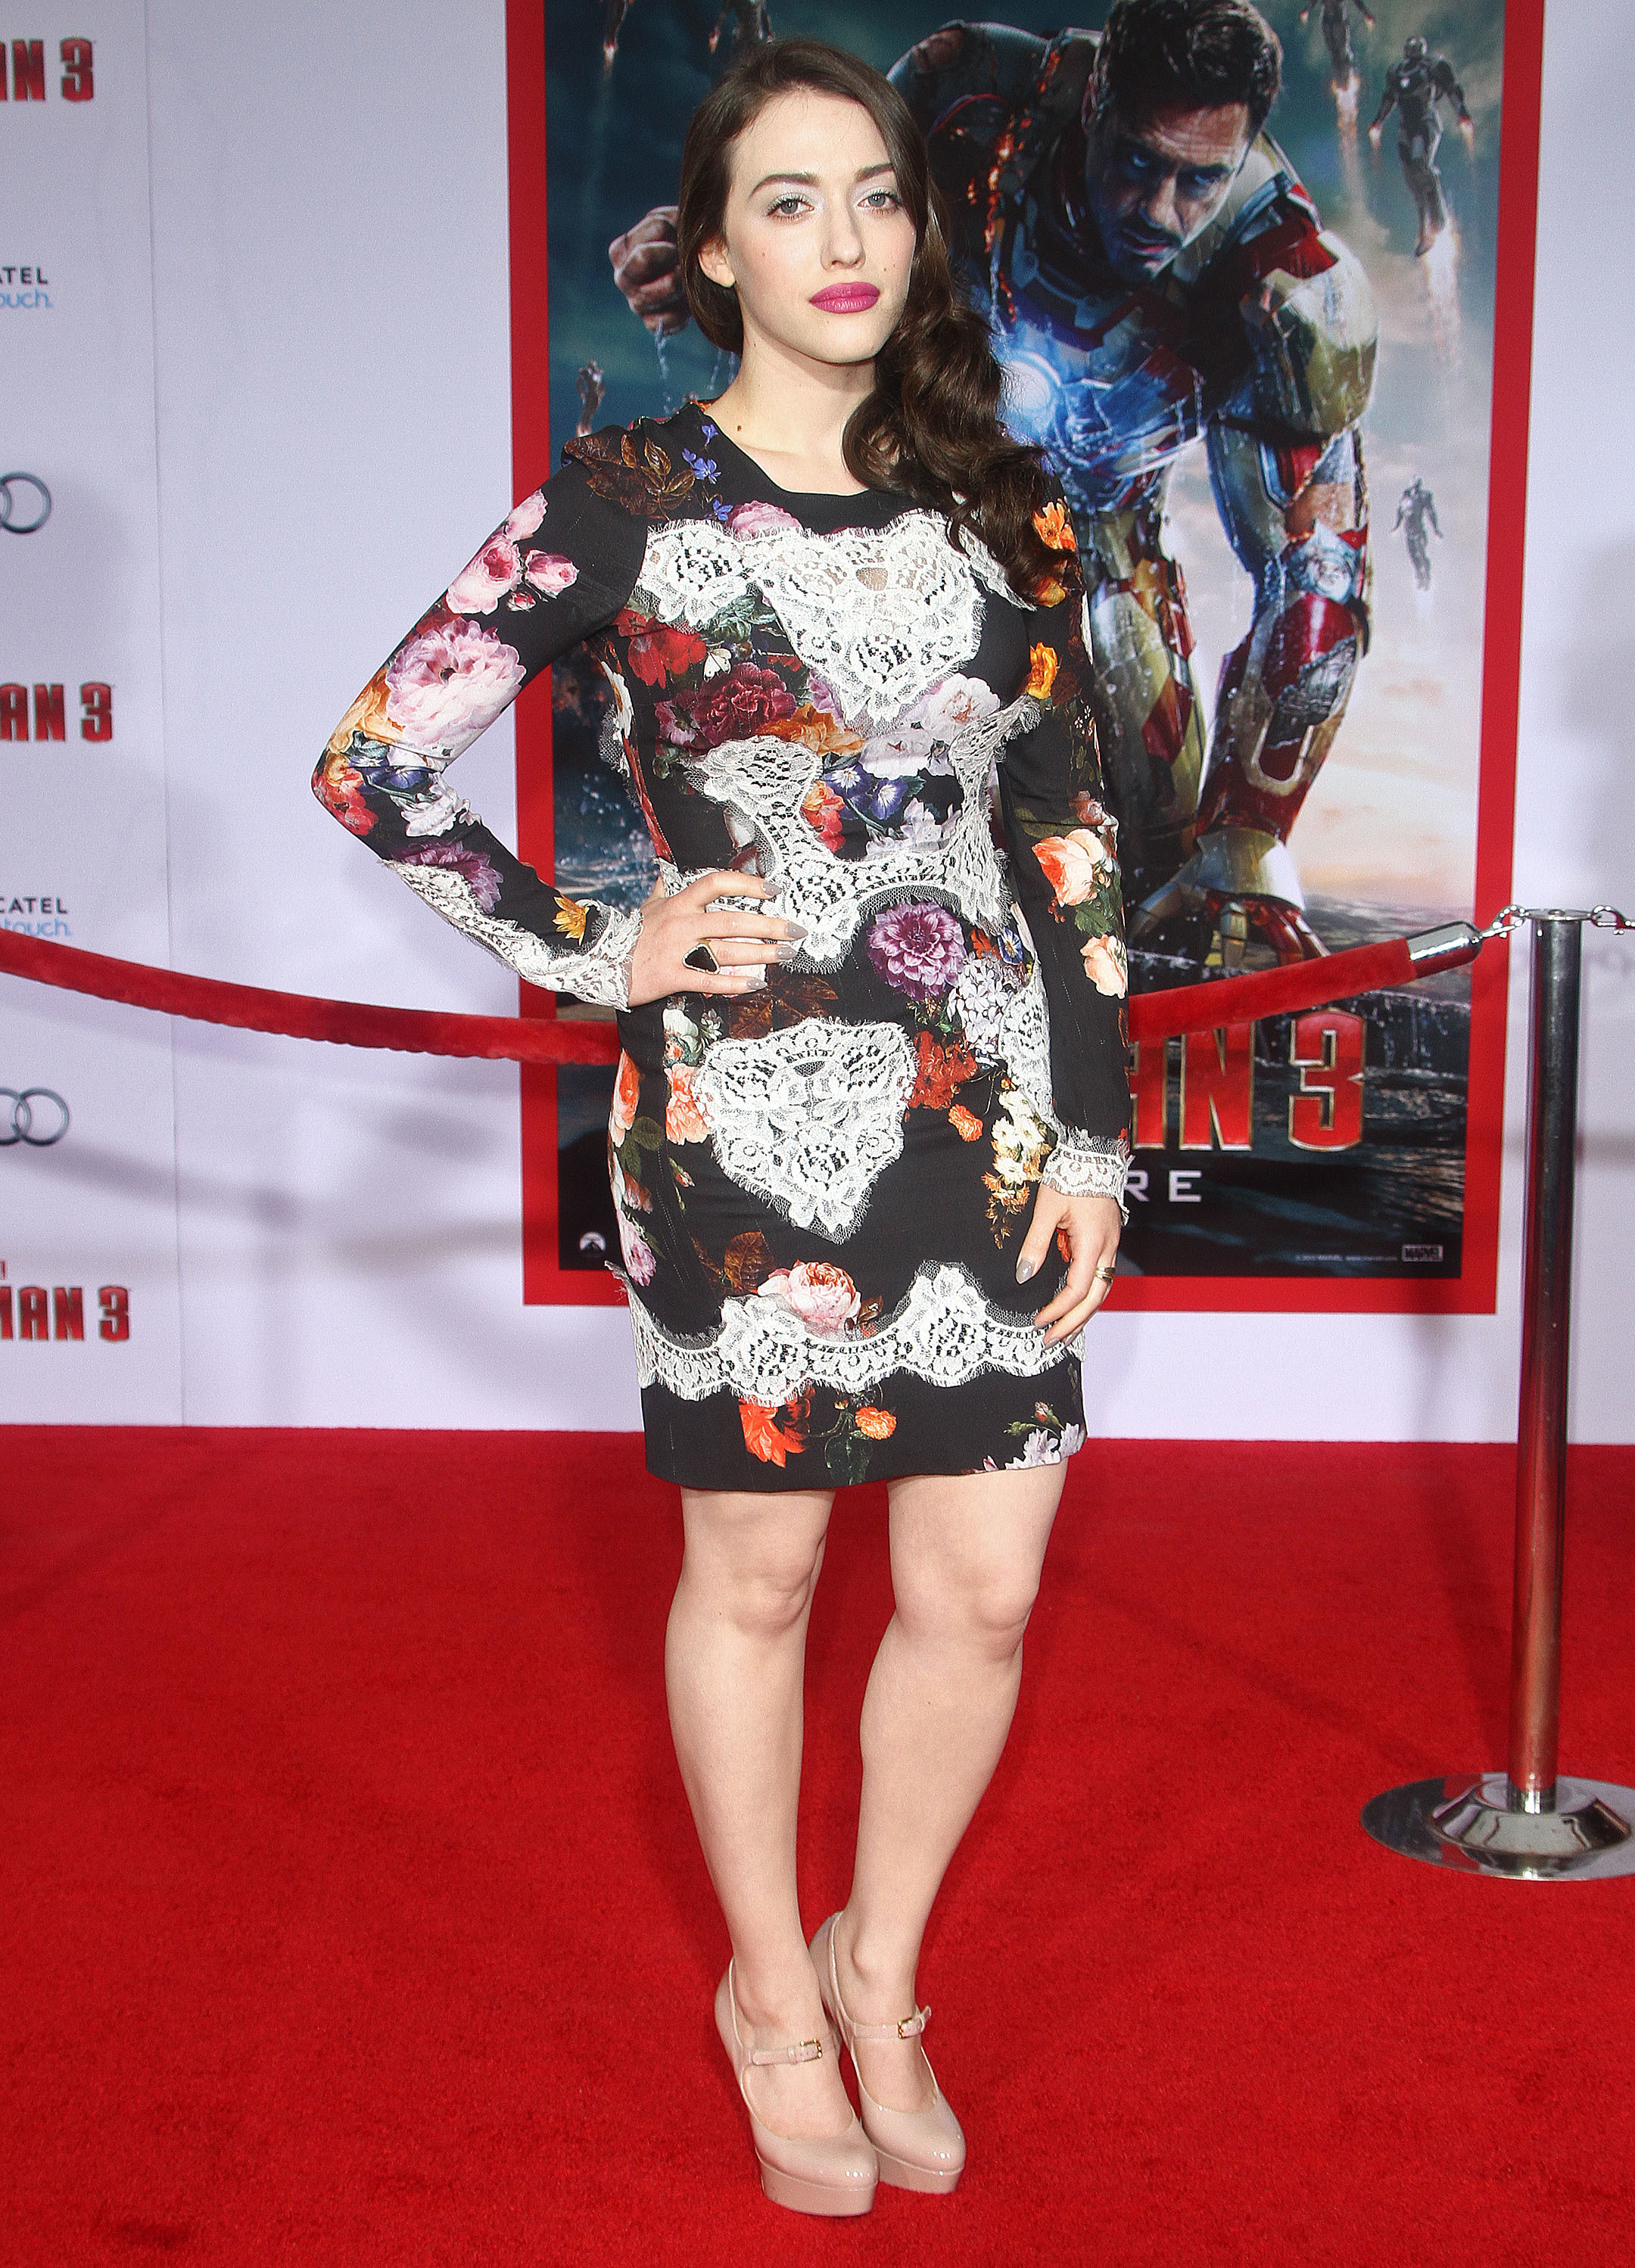 Kat Dennings floral dolce & gabbana dress